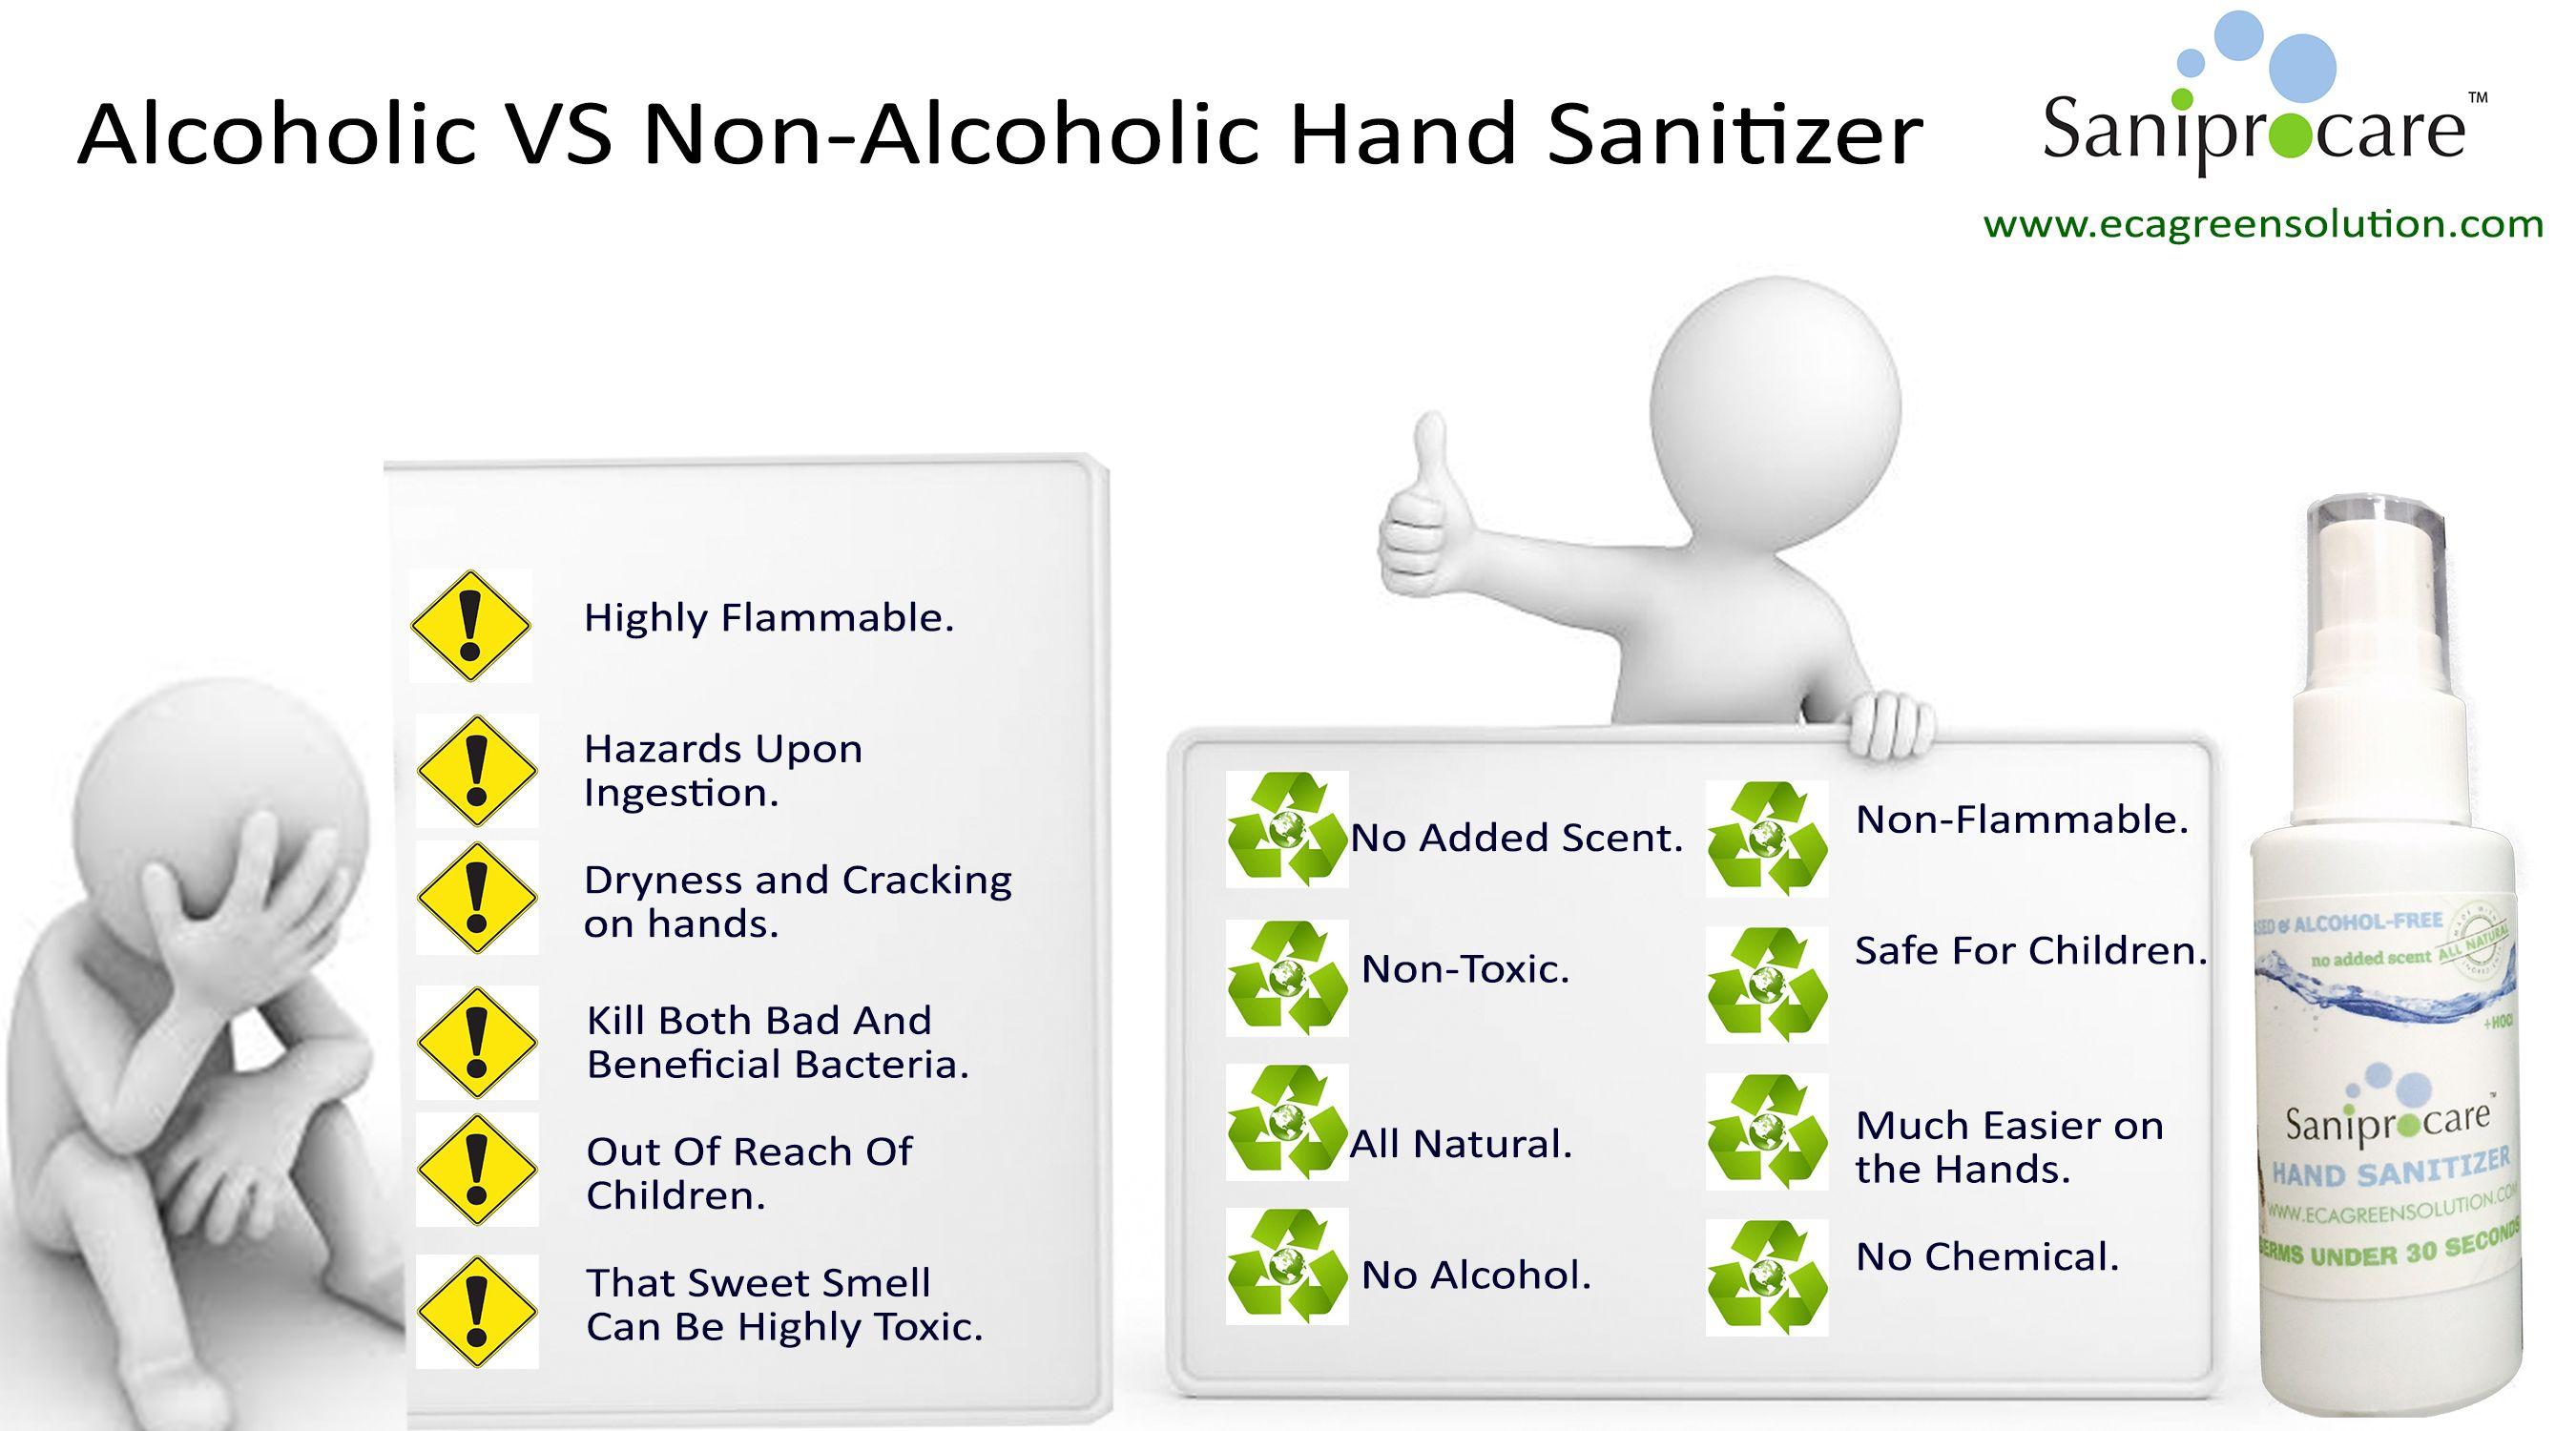 A Difference Between Alcoholic And Non Alcoholic Hand Sanitizers